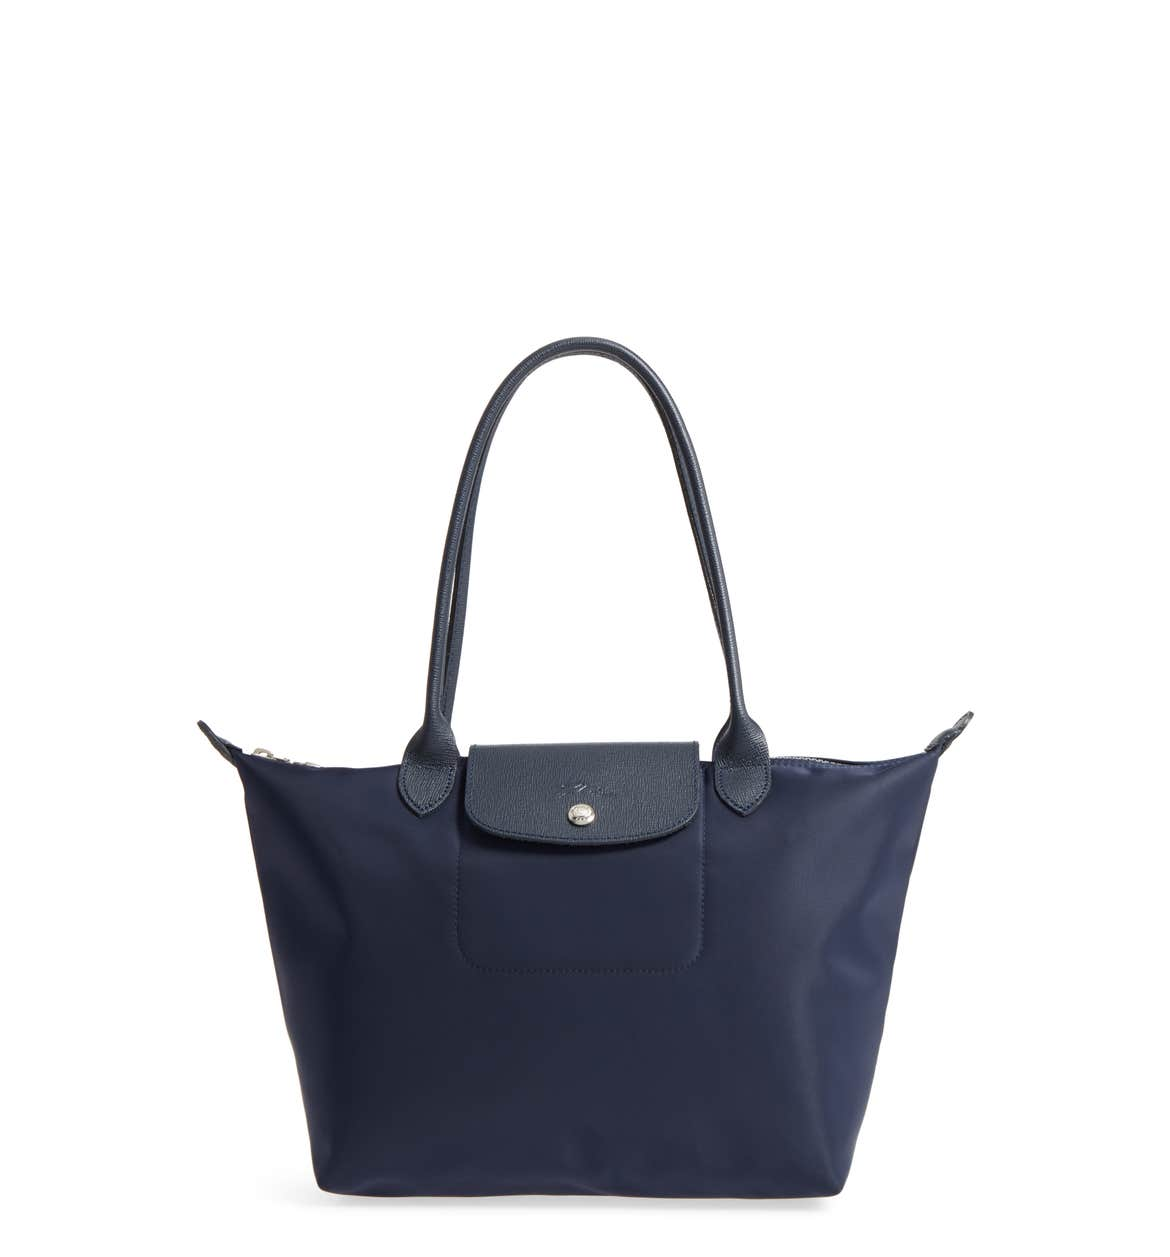 Medium Le Pliage Neo Nylon Shoulder Bag